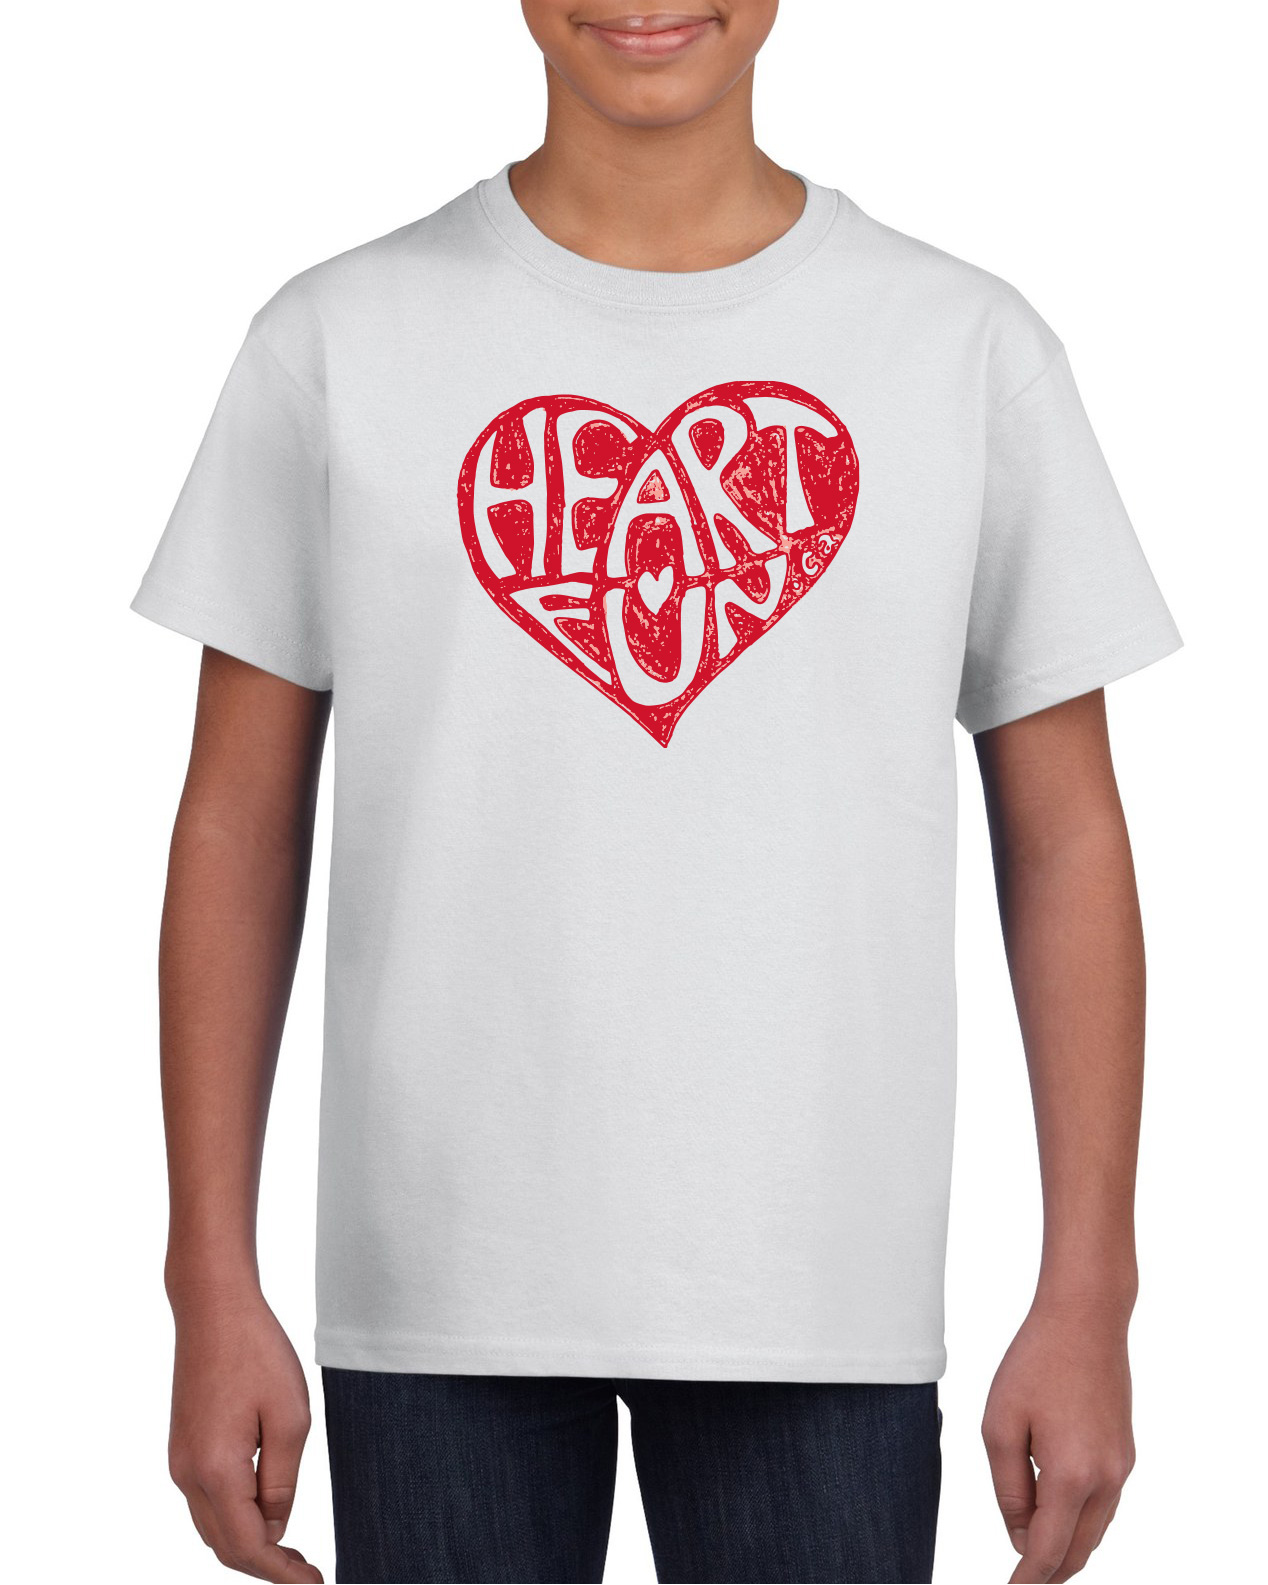 1_HeartFun_Front_Youth_White.jpg